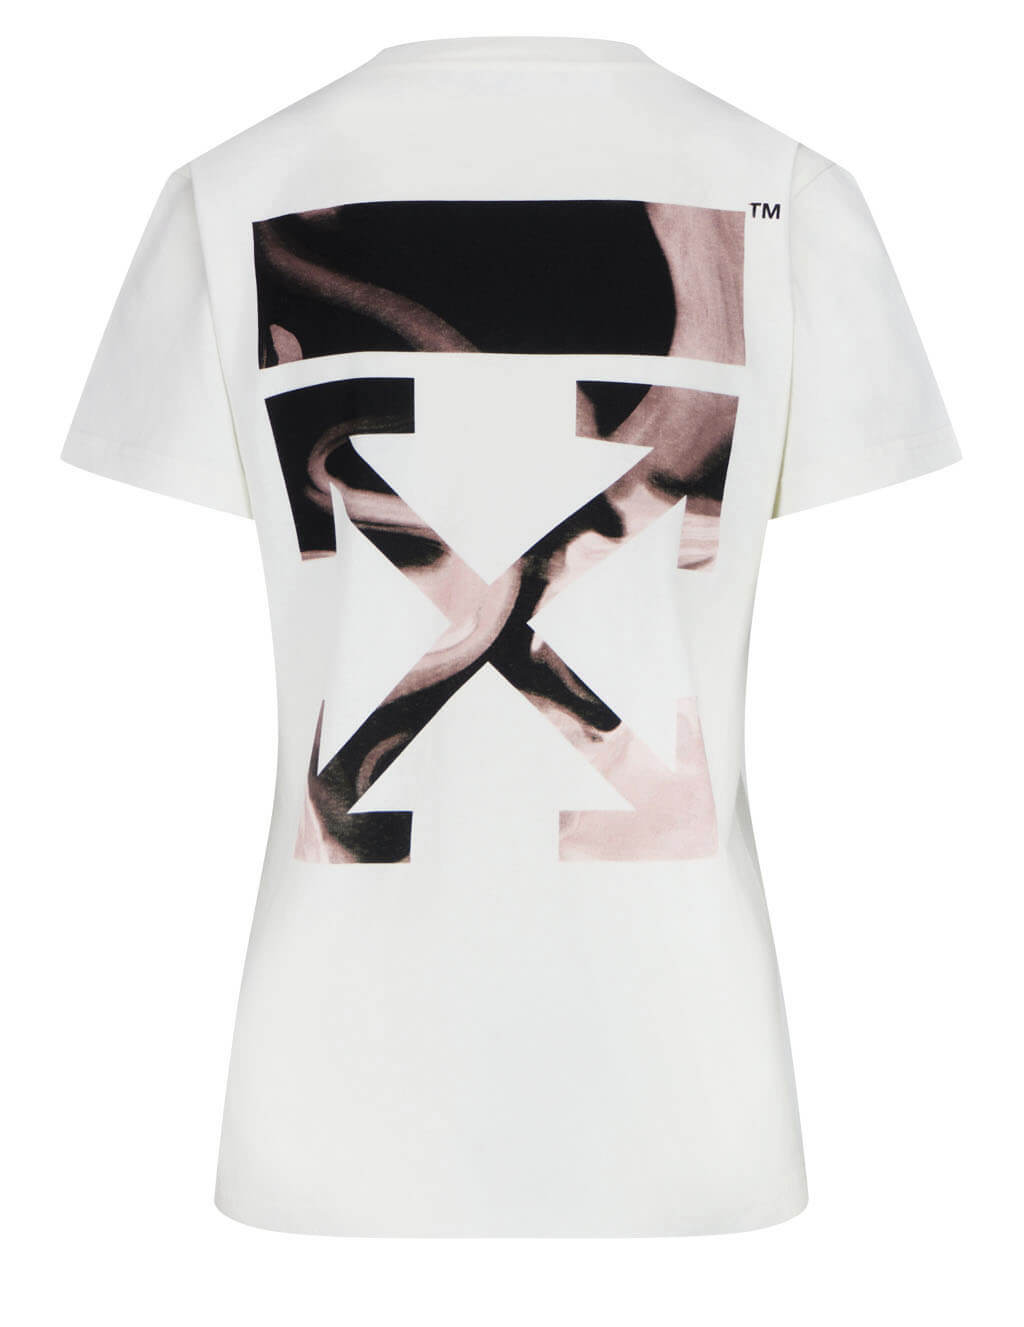 Women's Off-White Arrow Liquid Melt T-Shirt in White - OWAA049R21JER0010331